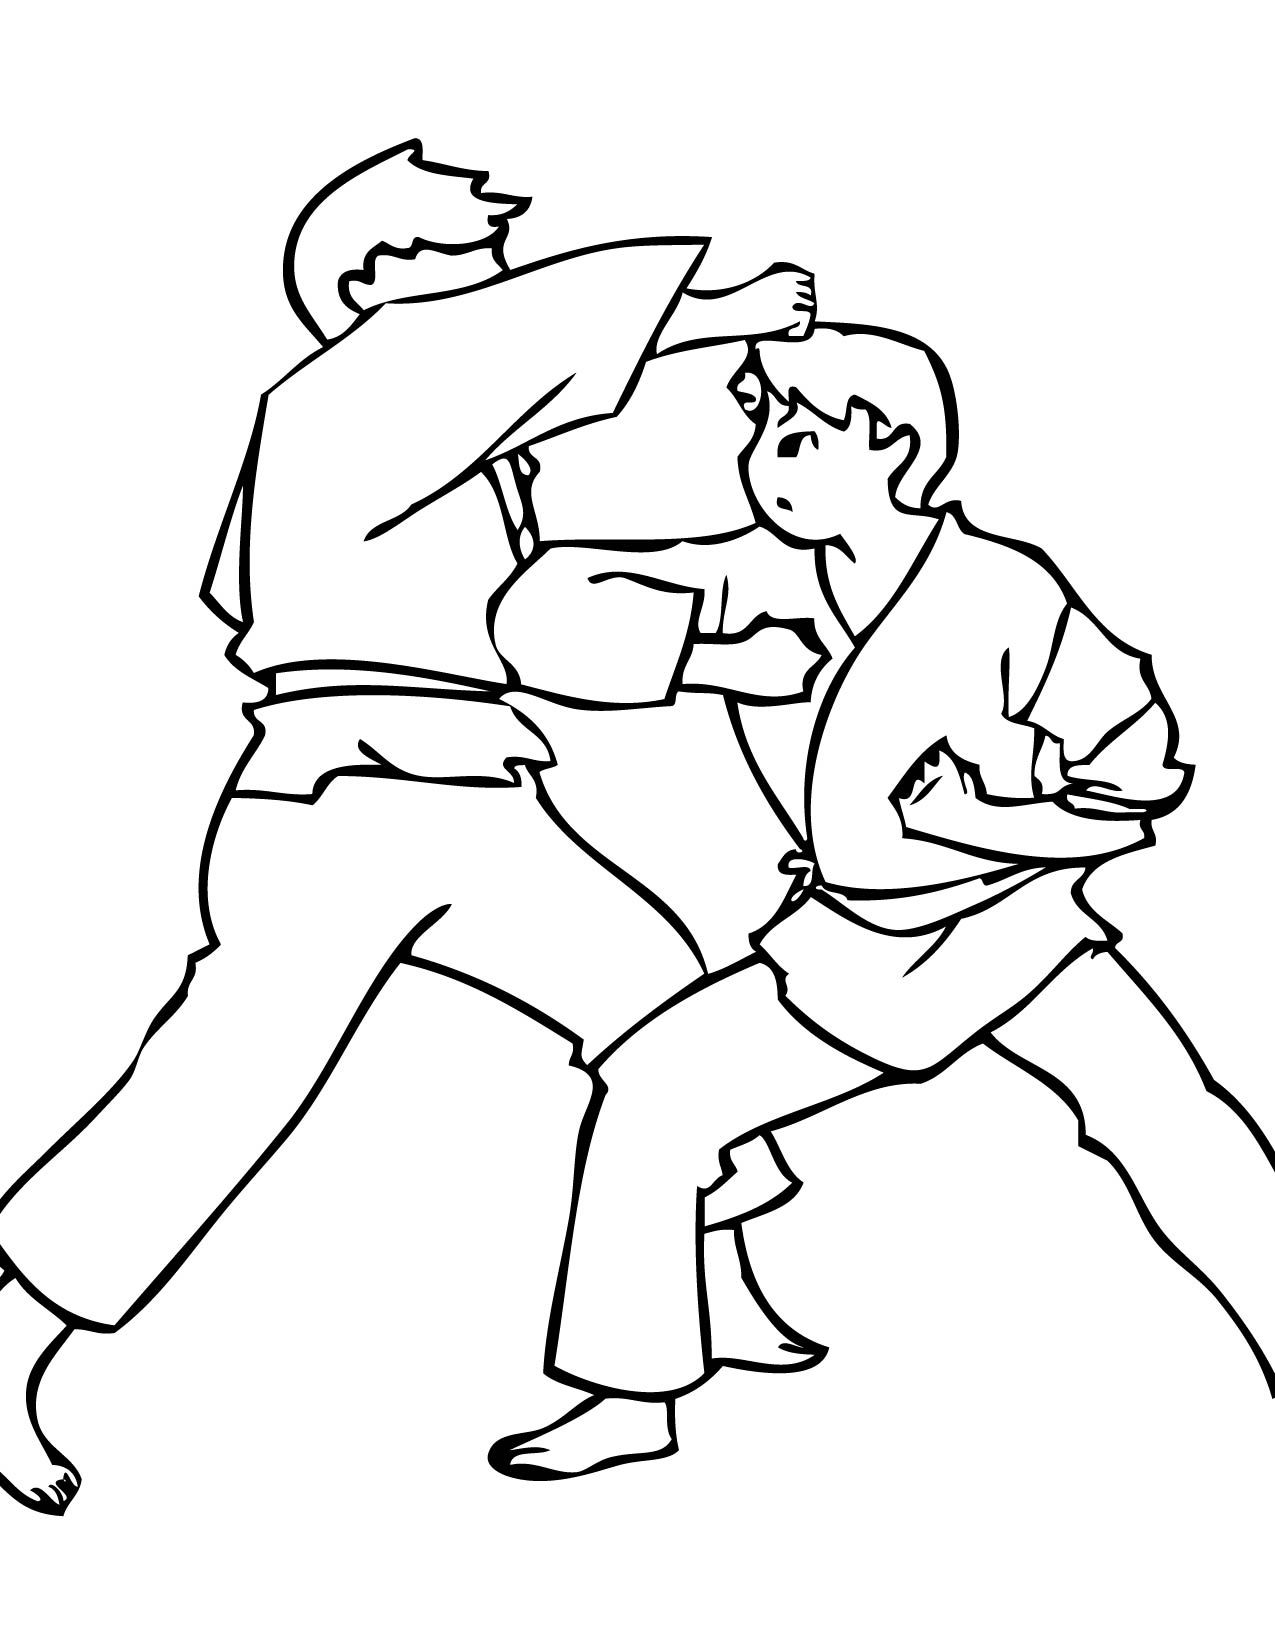 Color Karate Coloring Pages Sports Coloring Pages Free Coloring Pages